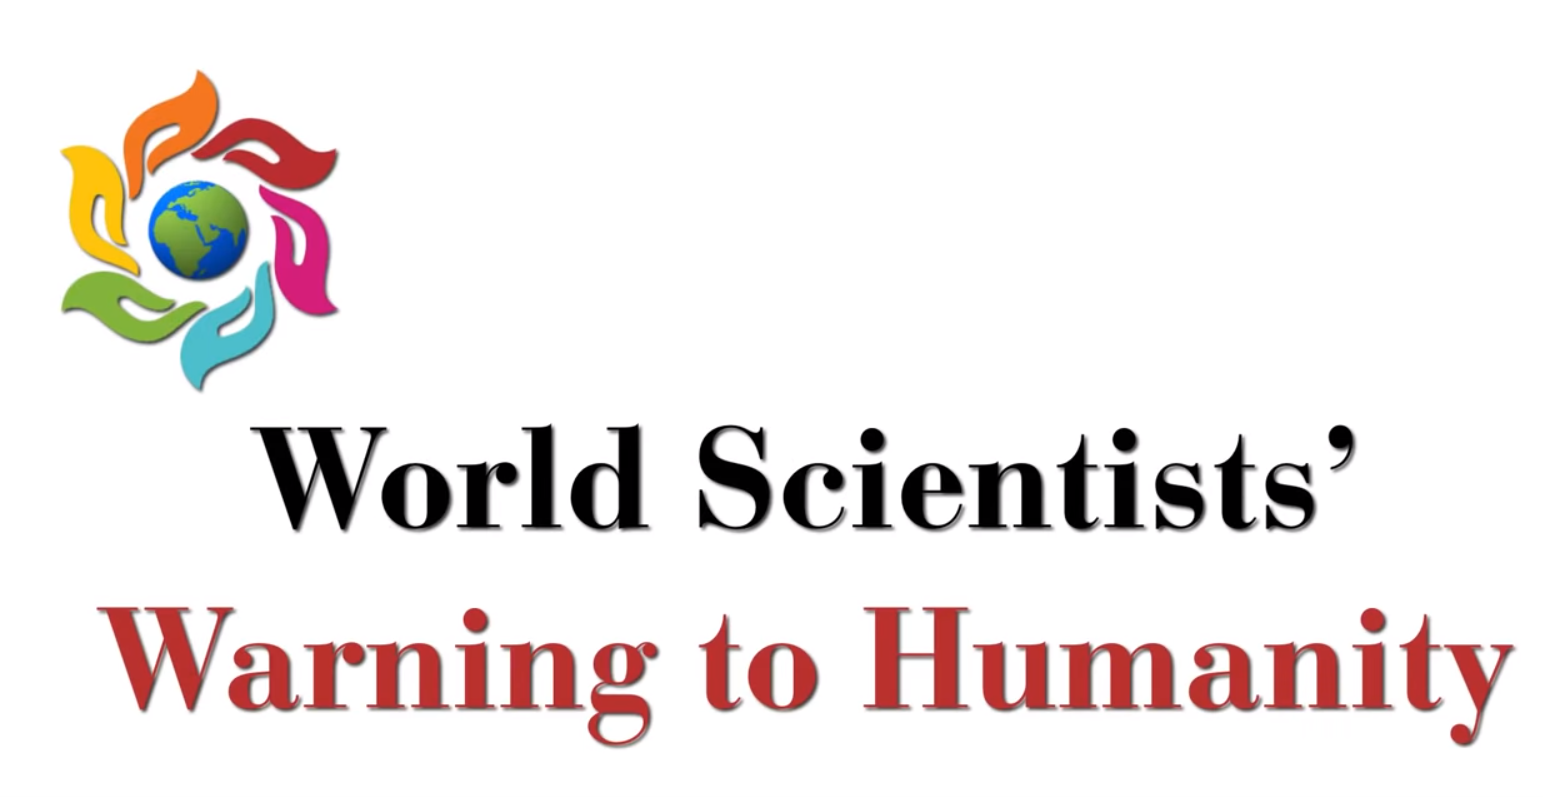 Scientists Warning logo